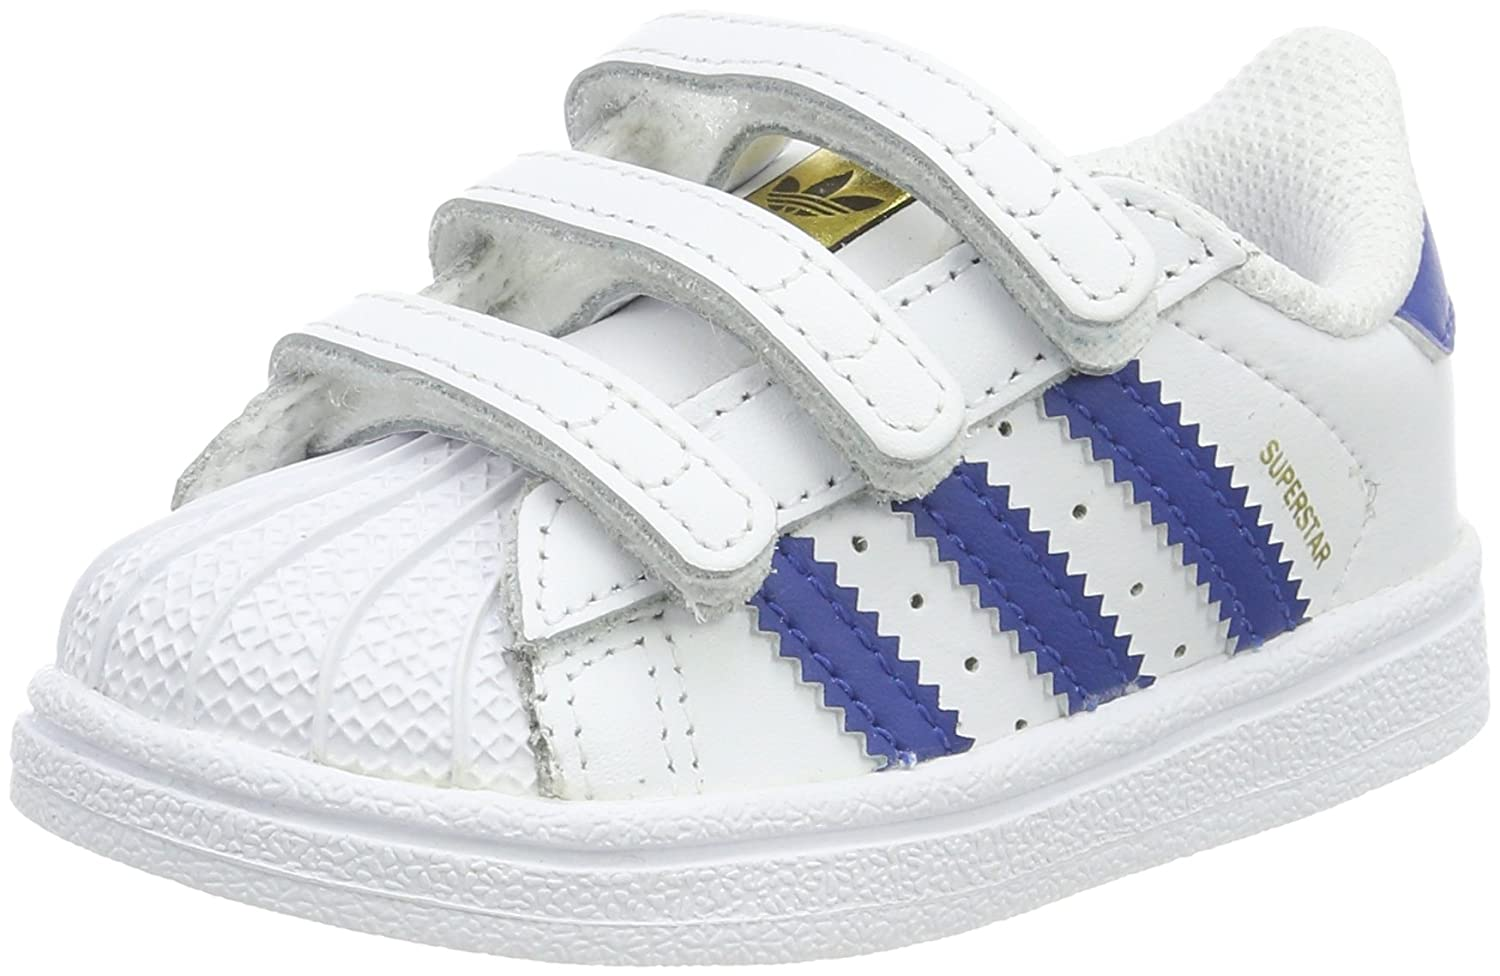 adidas Unisex Kids' Superstar Shoes Trainers